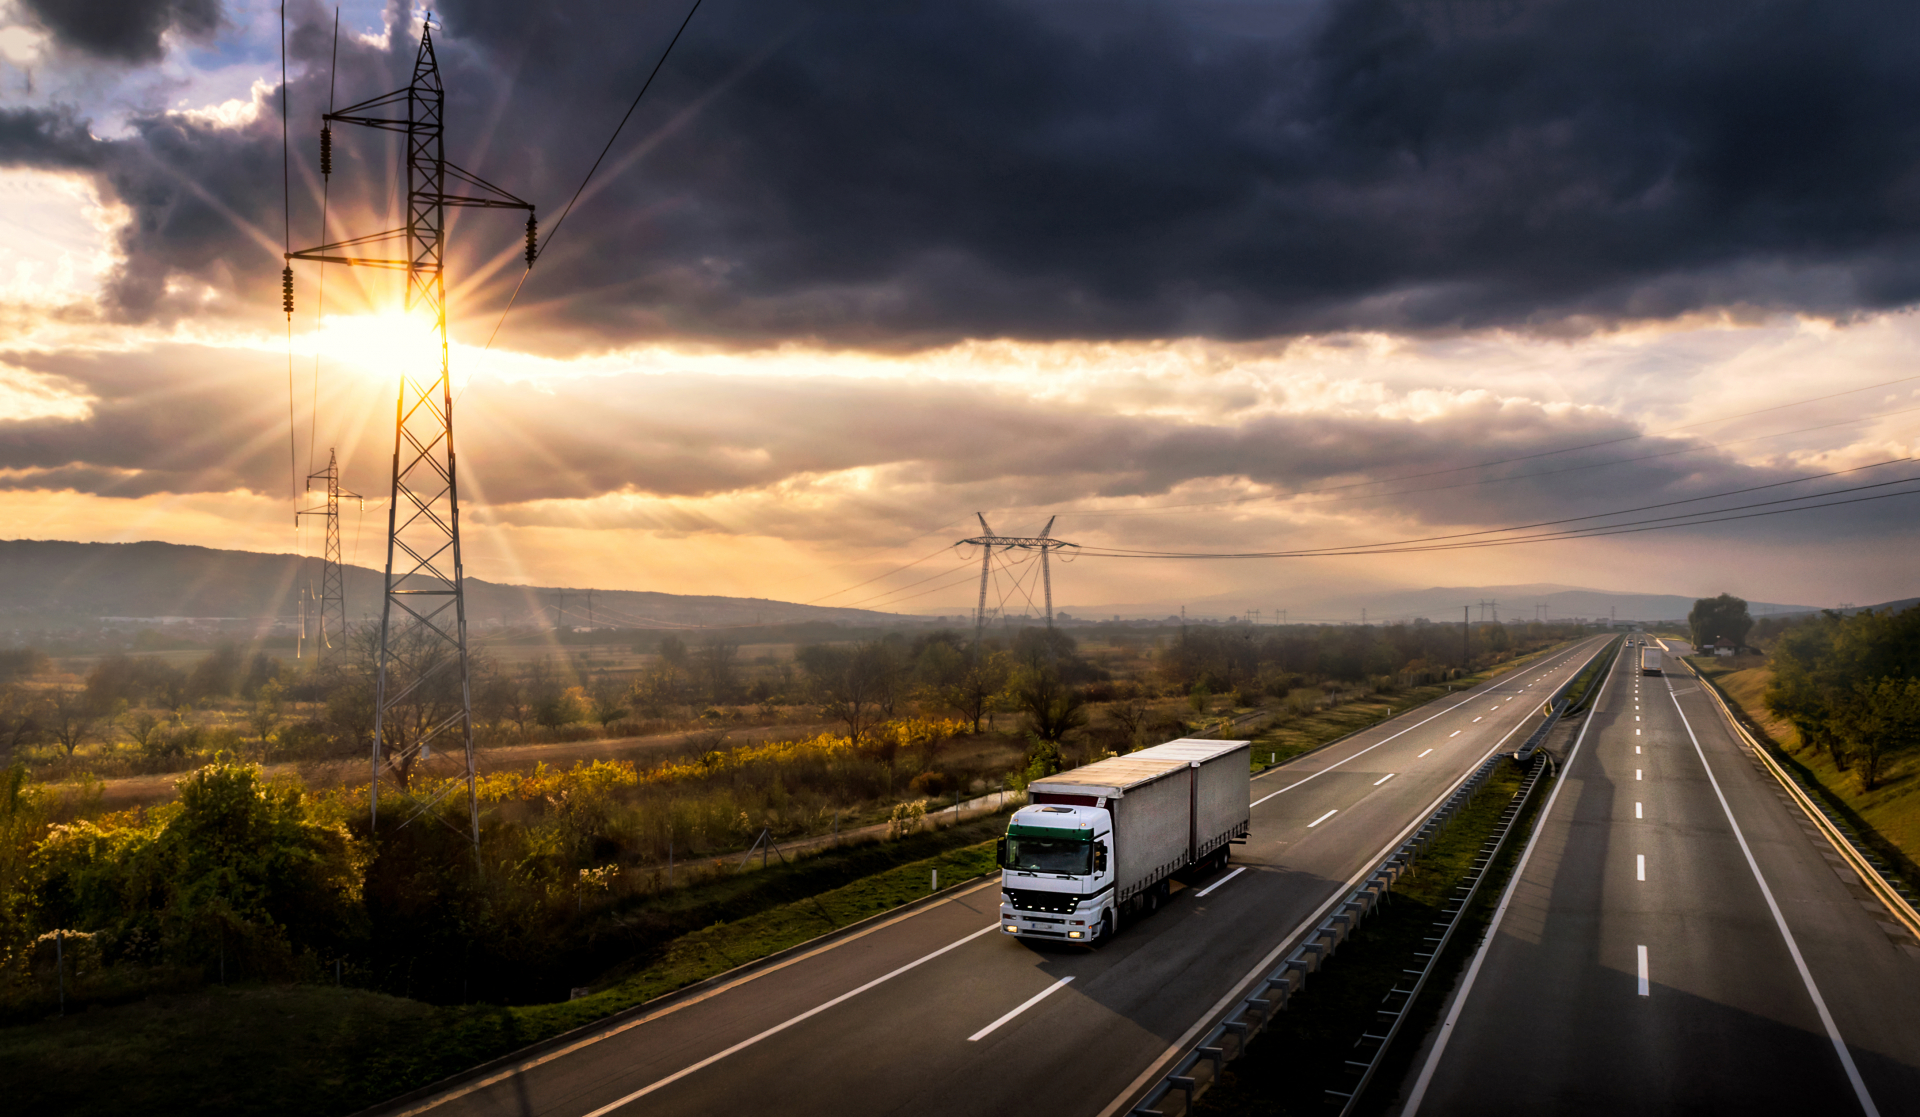 22973649-white-lorry-on-a-highway-at-sunset